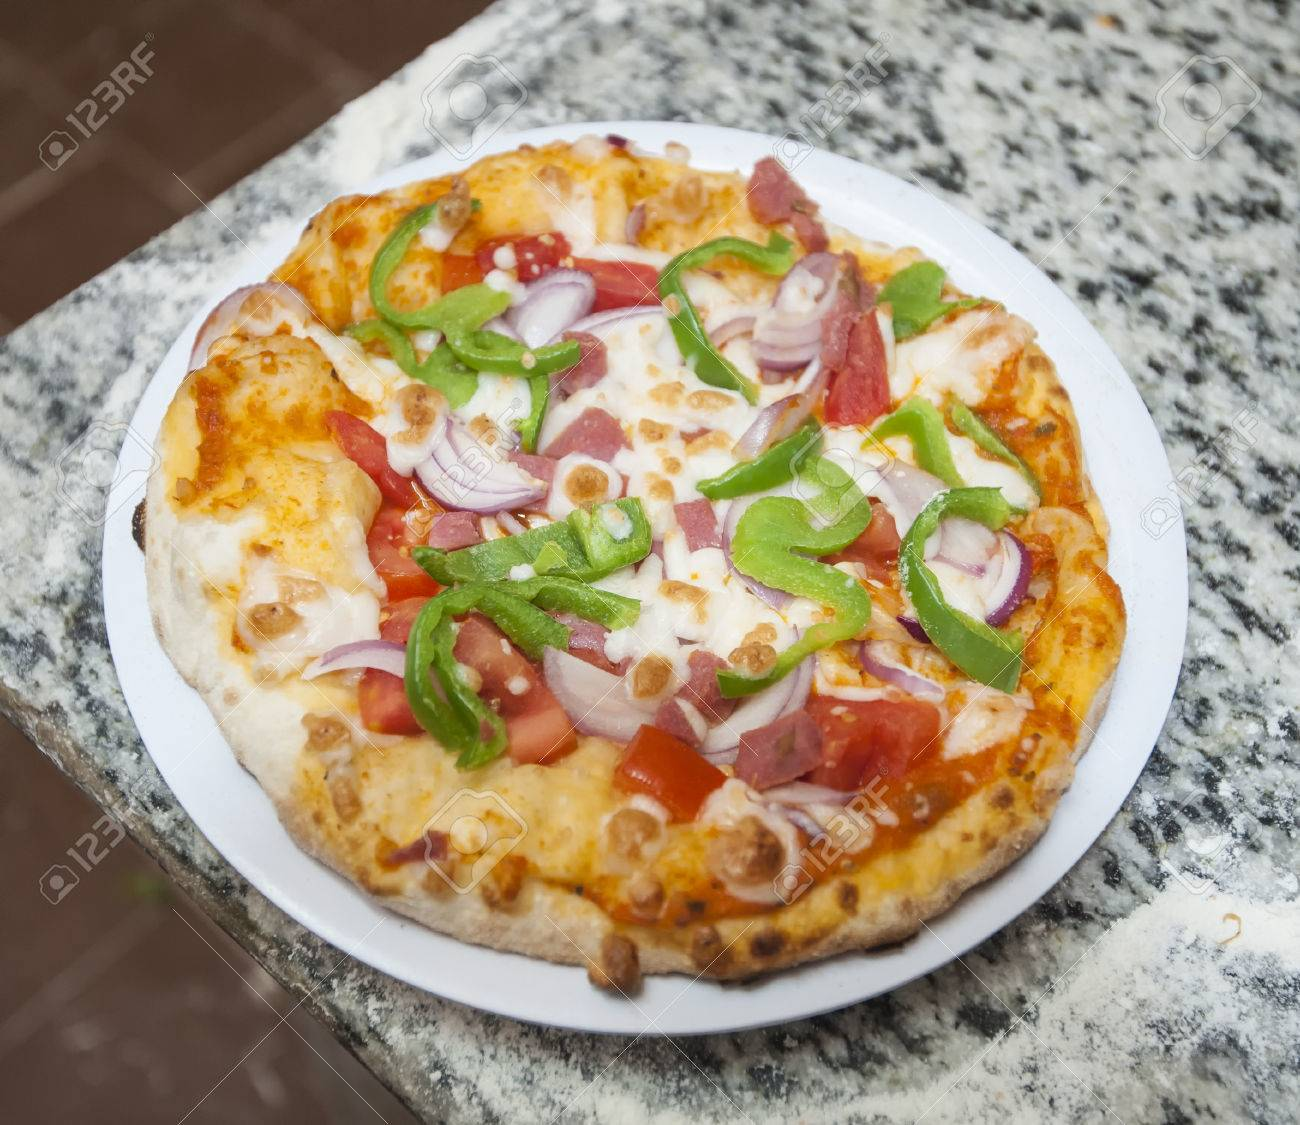 Hotel Hotel Pizza Pizza on a Plate at Hotel